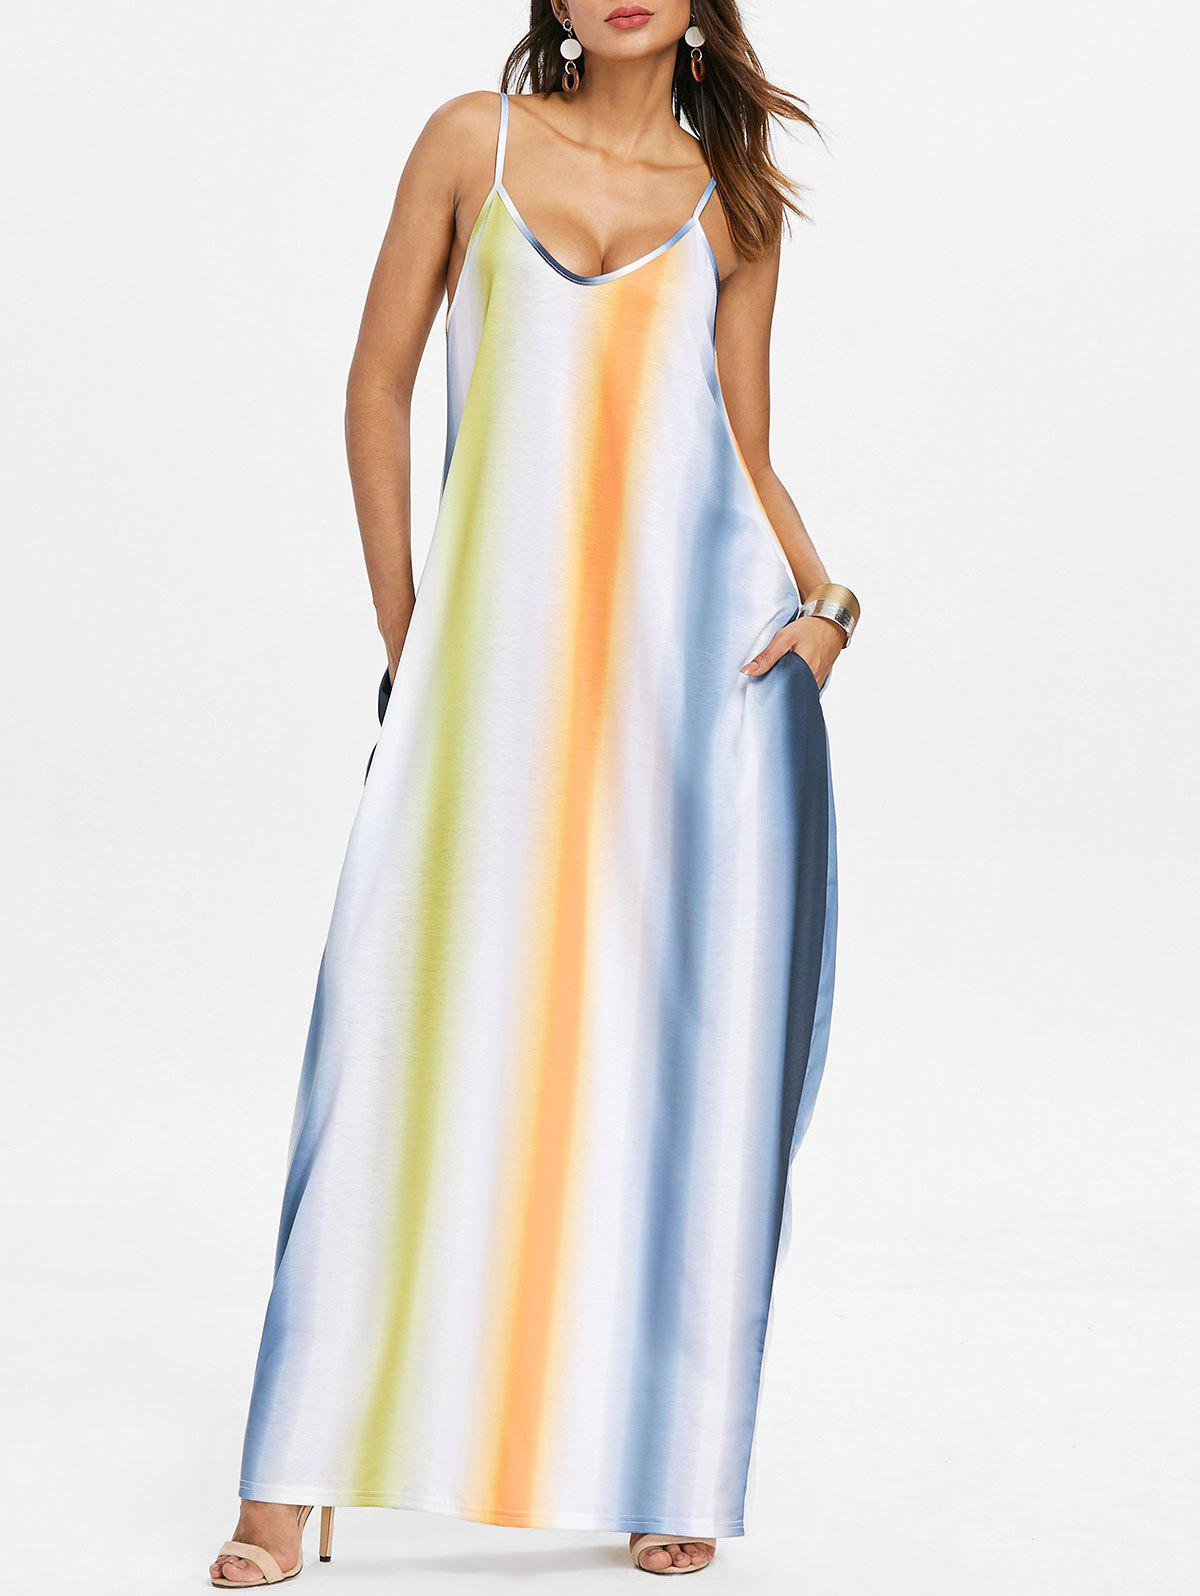 Striped Color Block Floor Length Dress - multicolor B XL